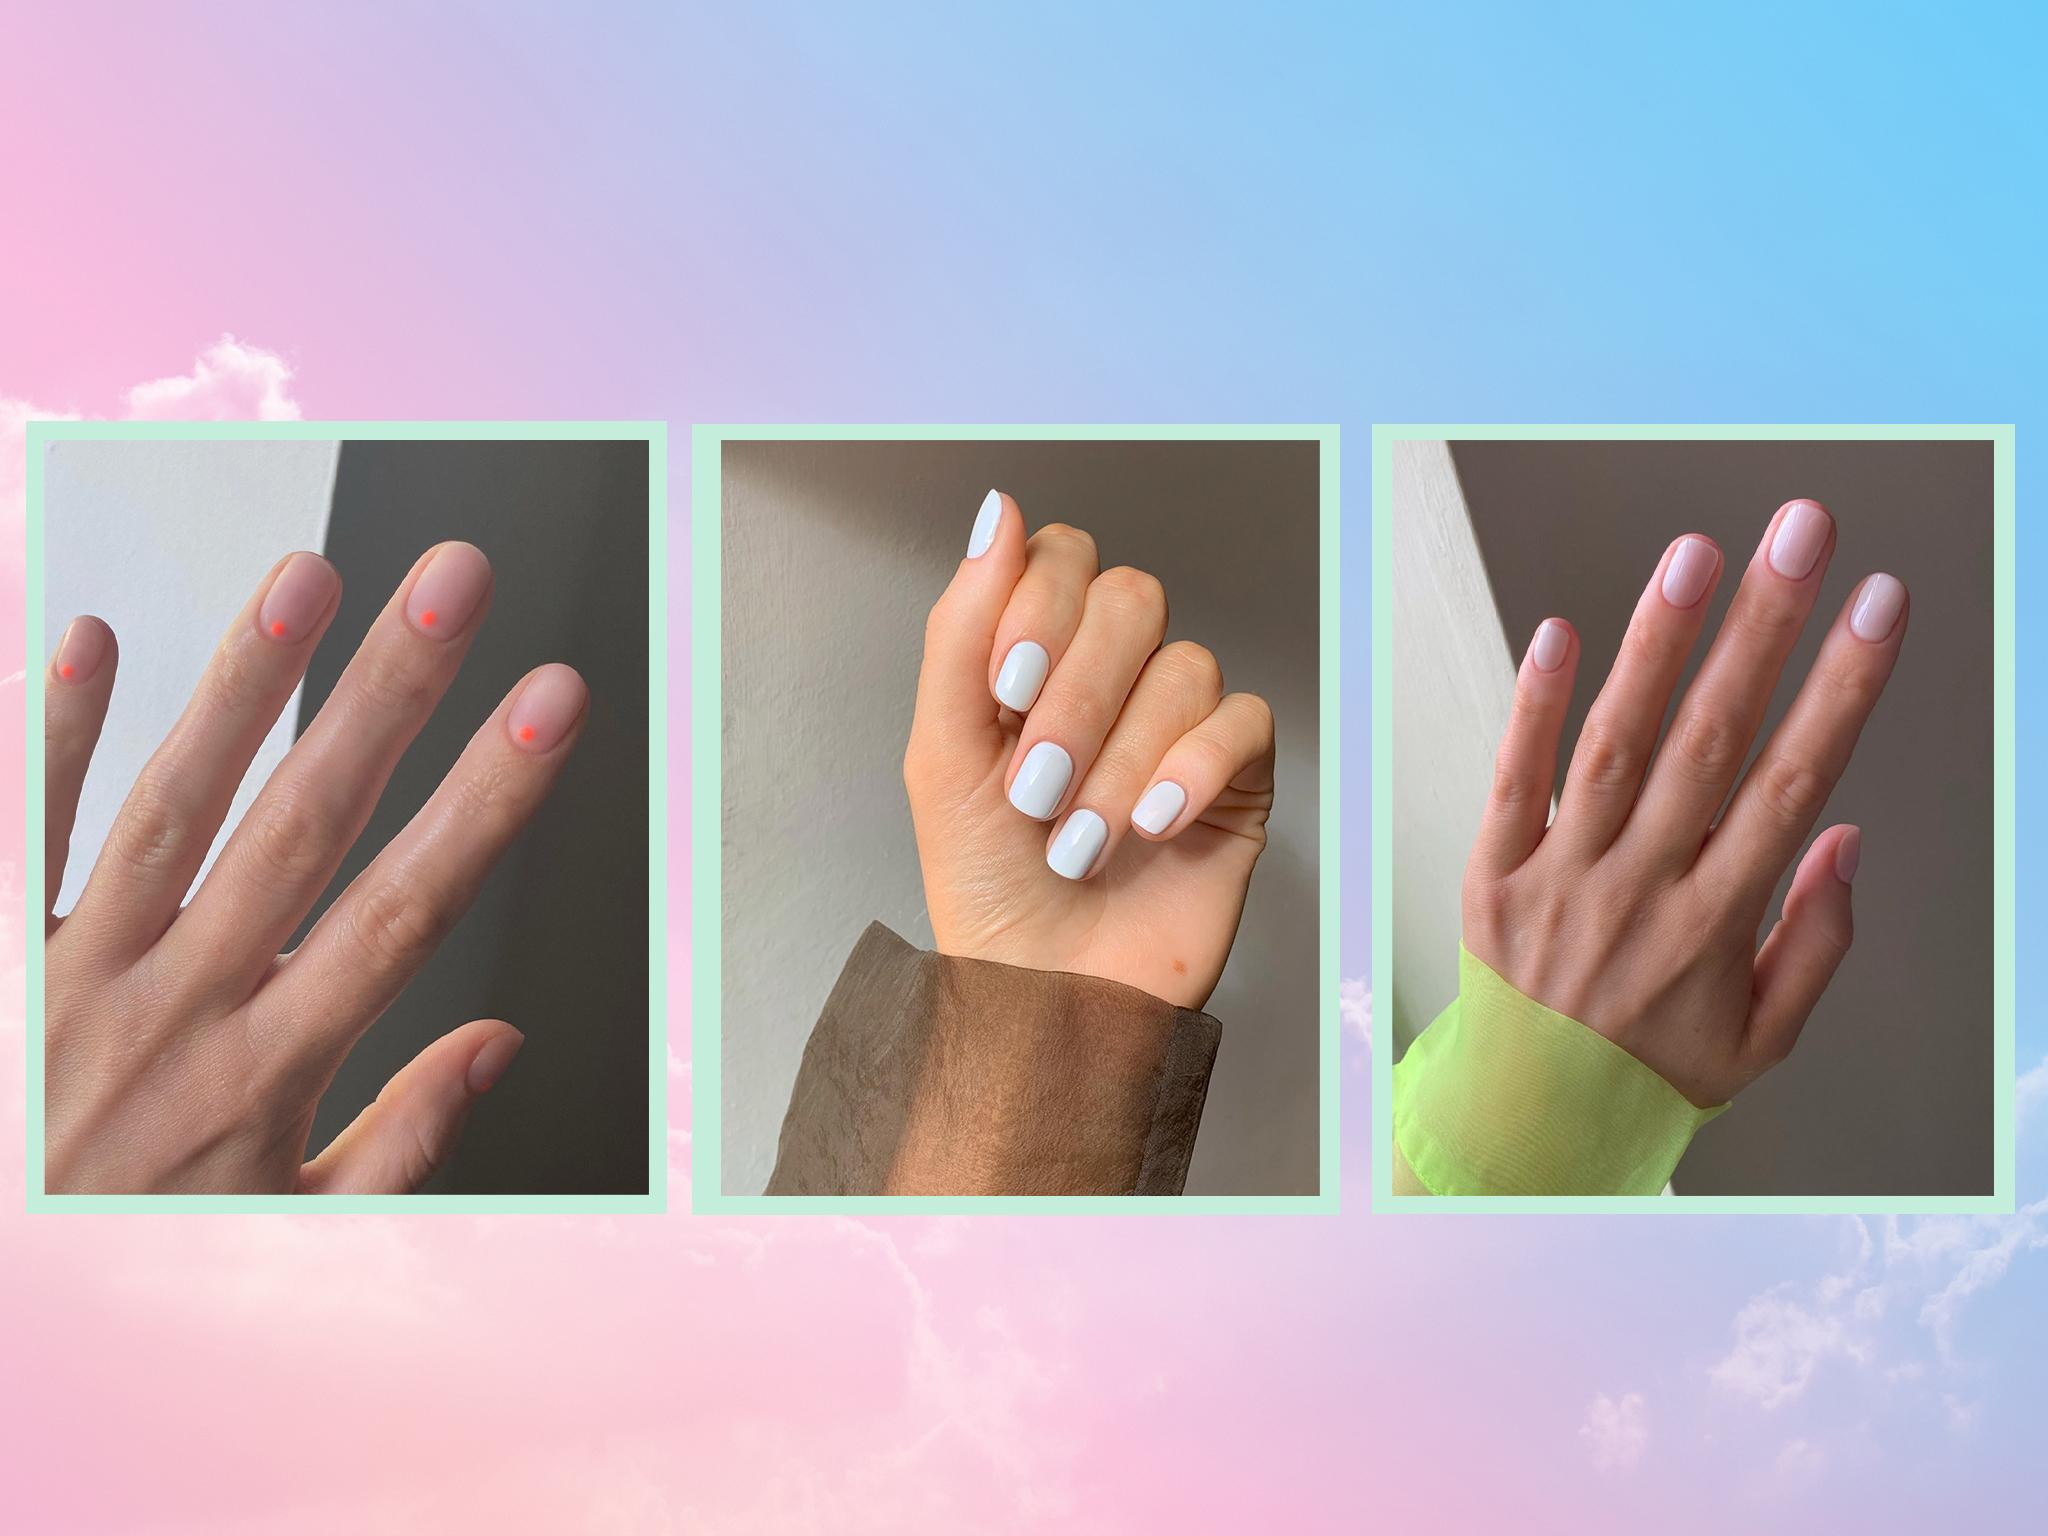 Nail salons reopening: How to perfect a manicure at home as